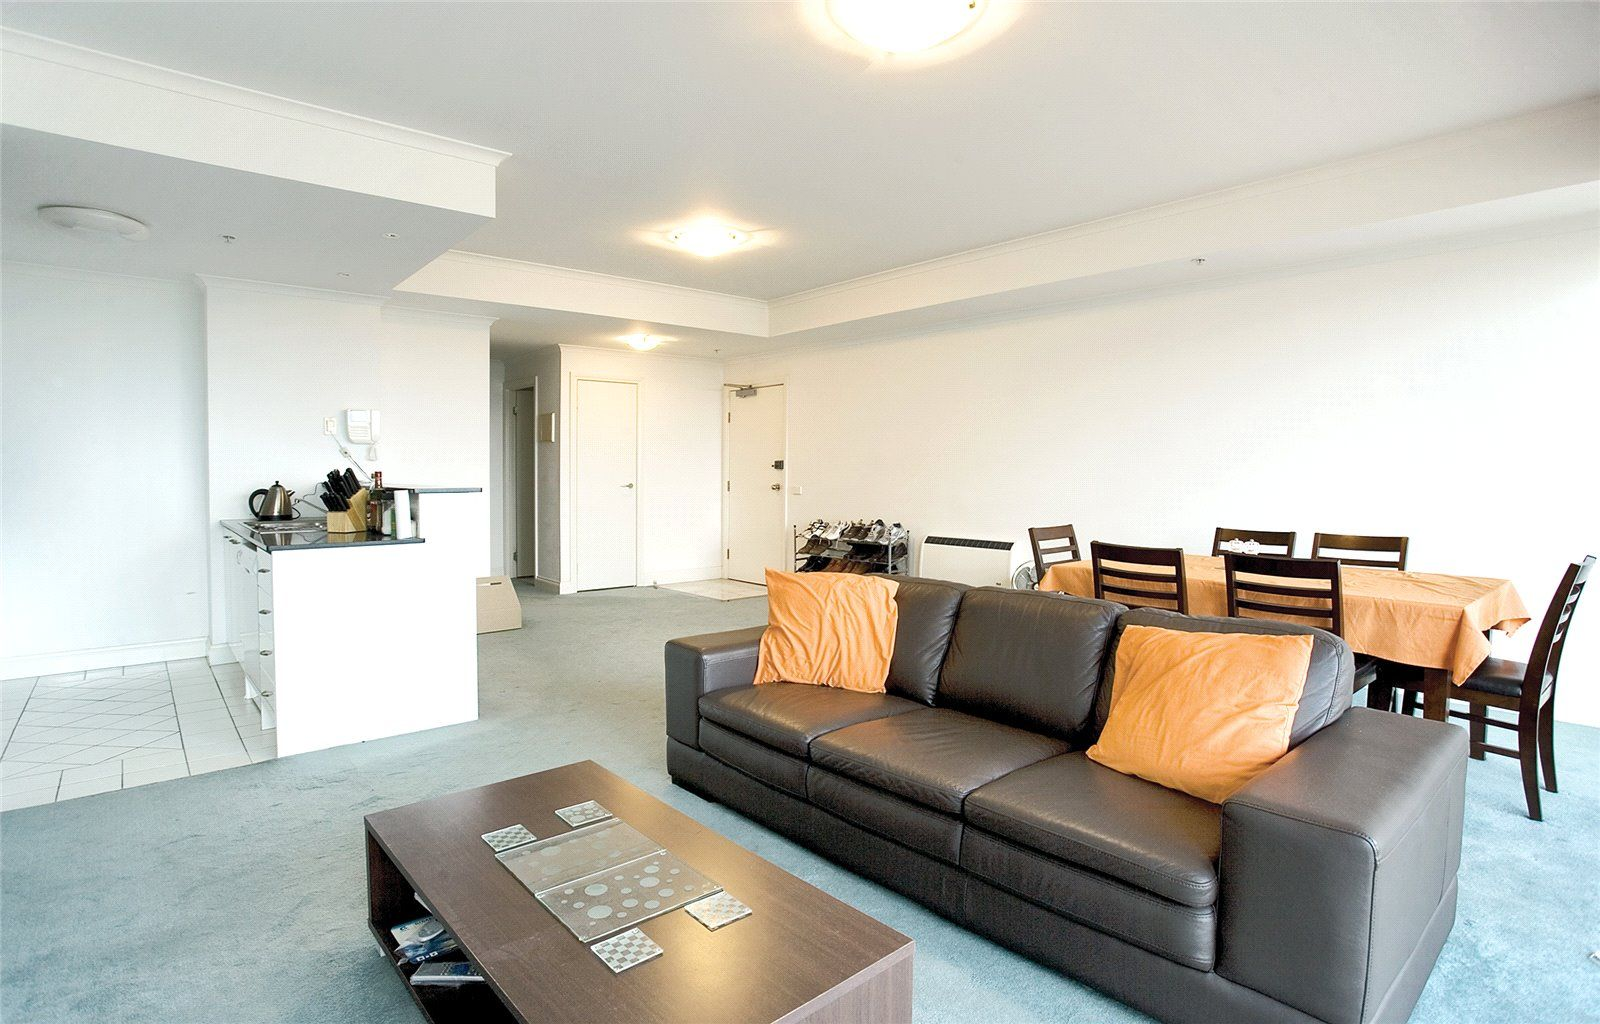 Boulevarde: 8th Floor - Sunny and Spacious!